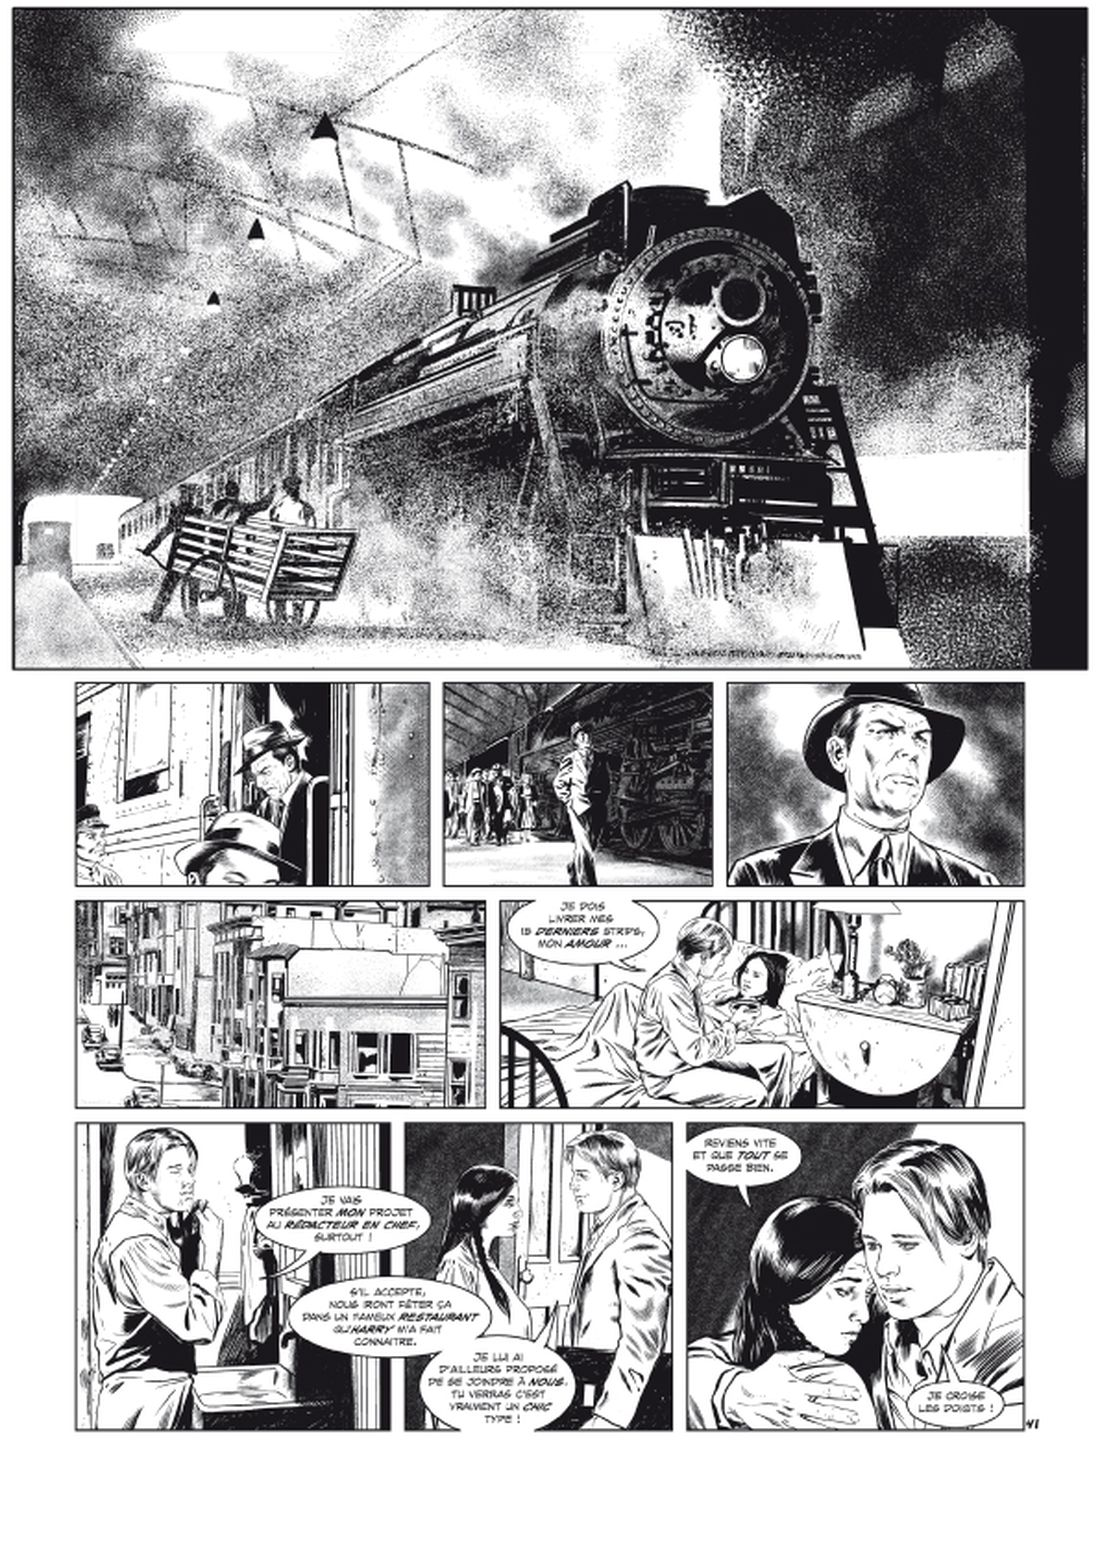 l'Art du Crime, version noir & blanc de la planche 41 du tome 5 © Glénat / Karl T. / Omeyer / Berlion